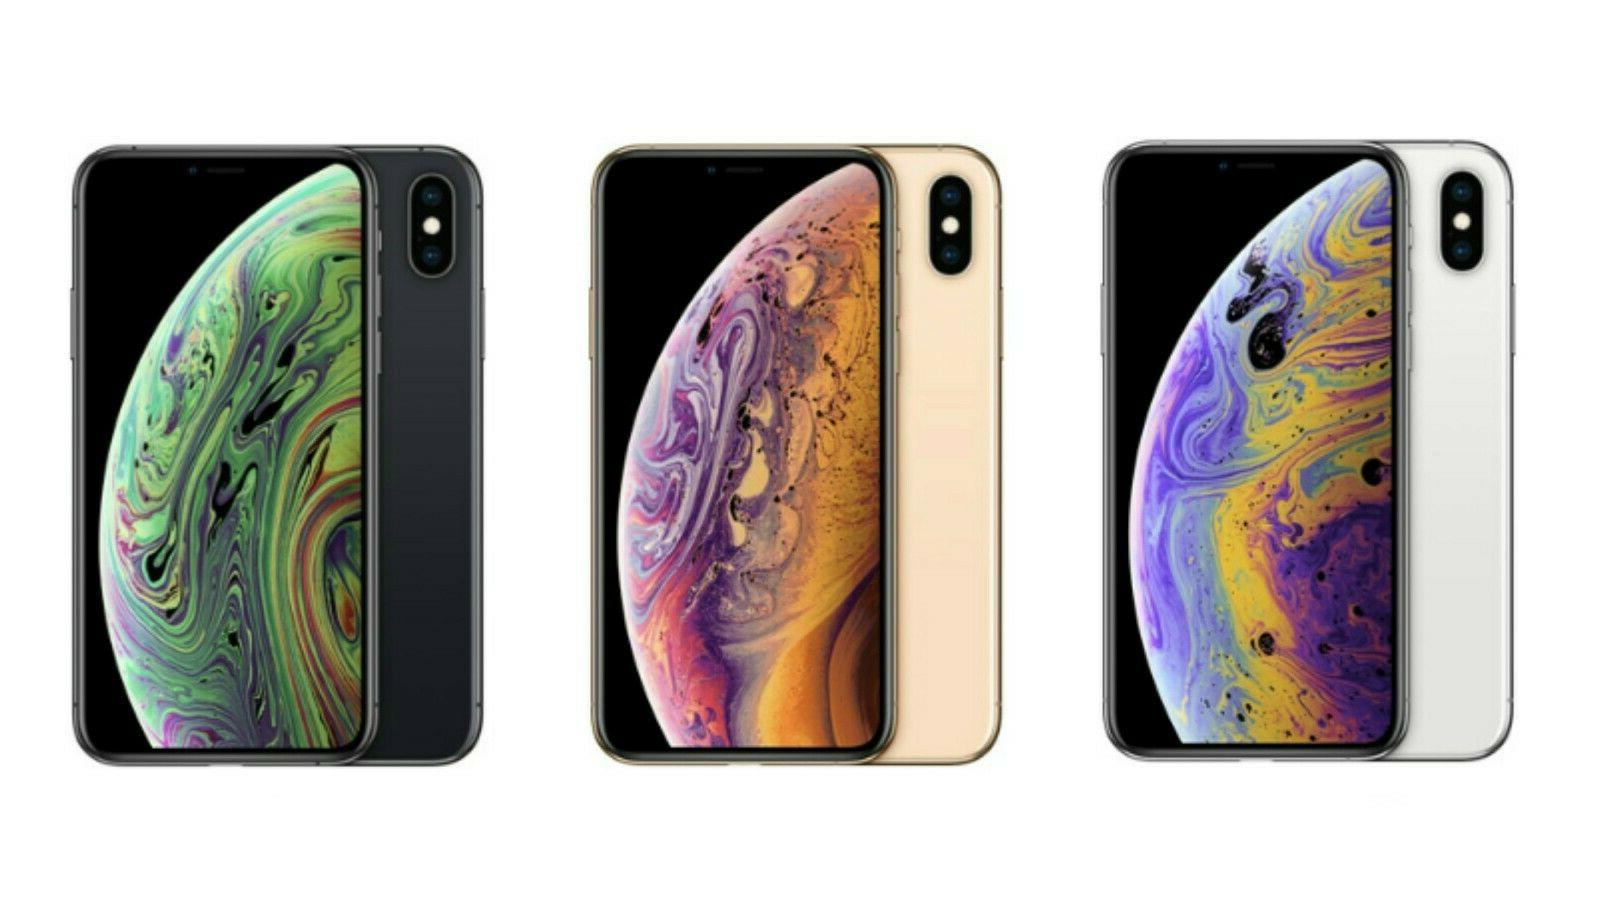 iphone xs 256gb silver gold space gray